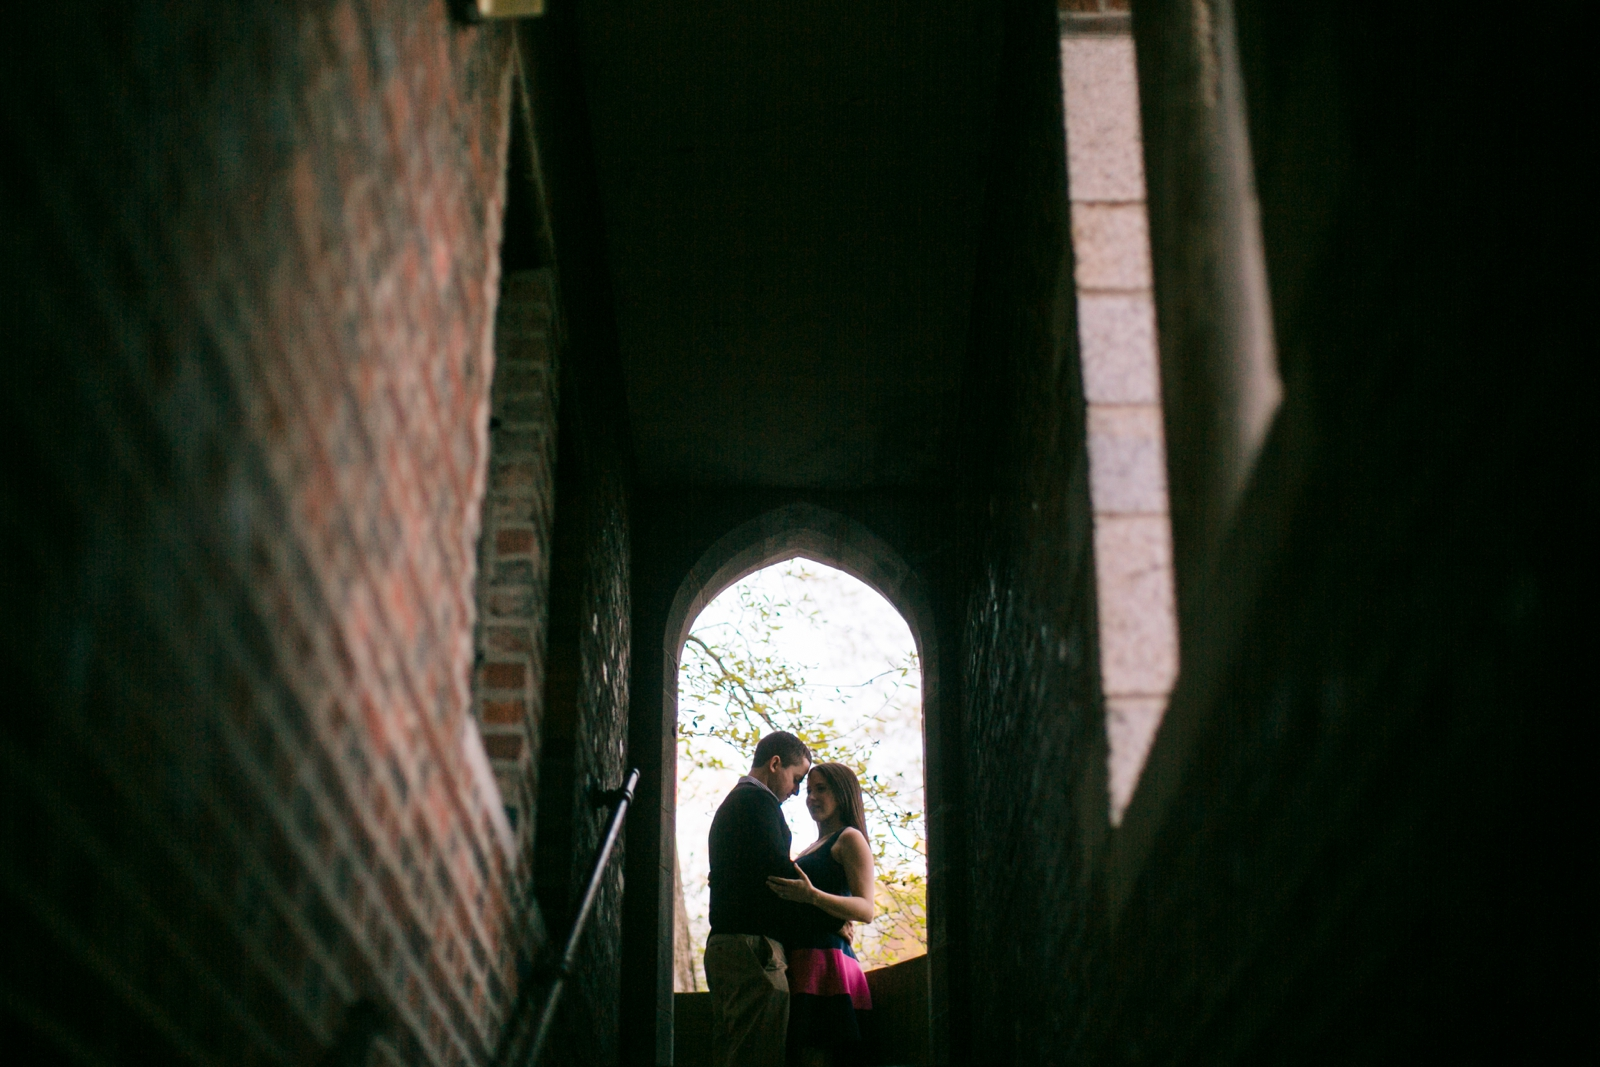 Silhouette of couple pulling each other in close, romantic moody engagement portrait